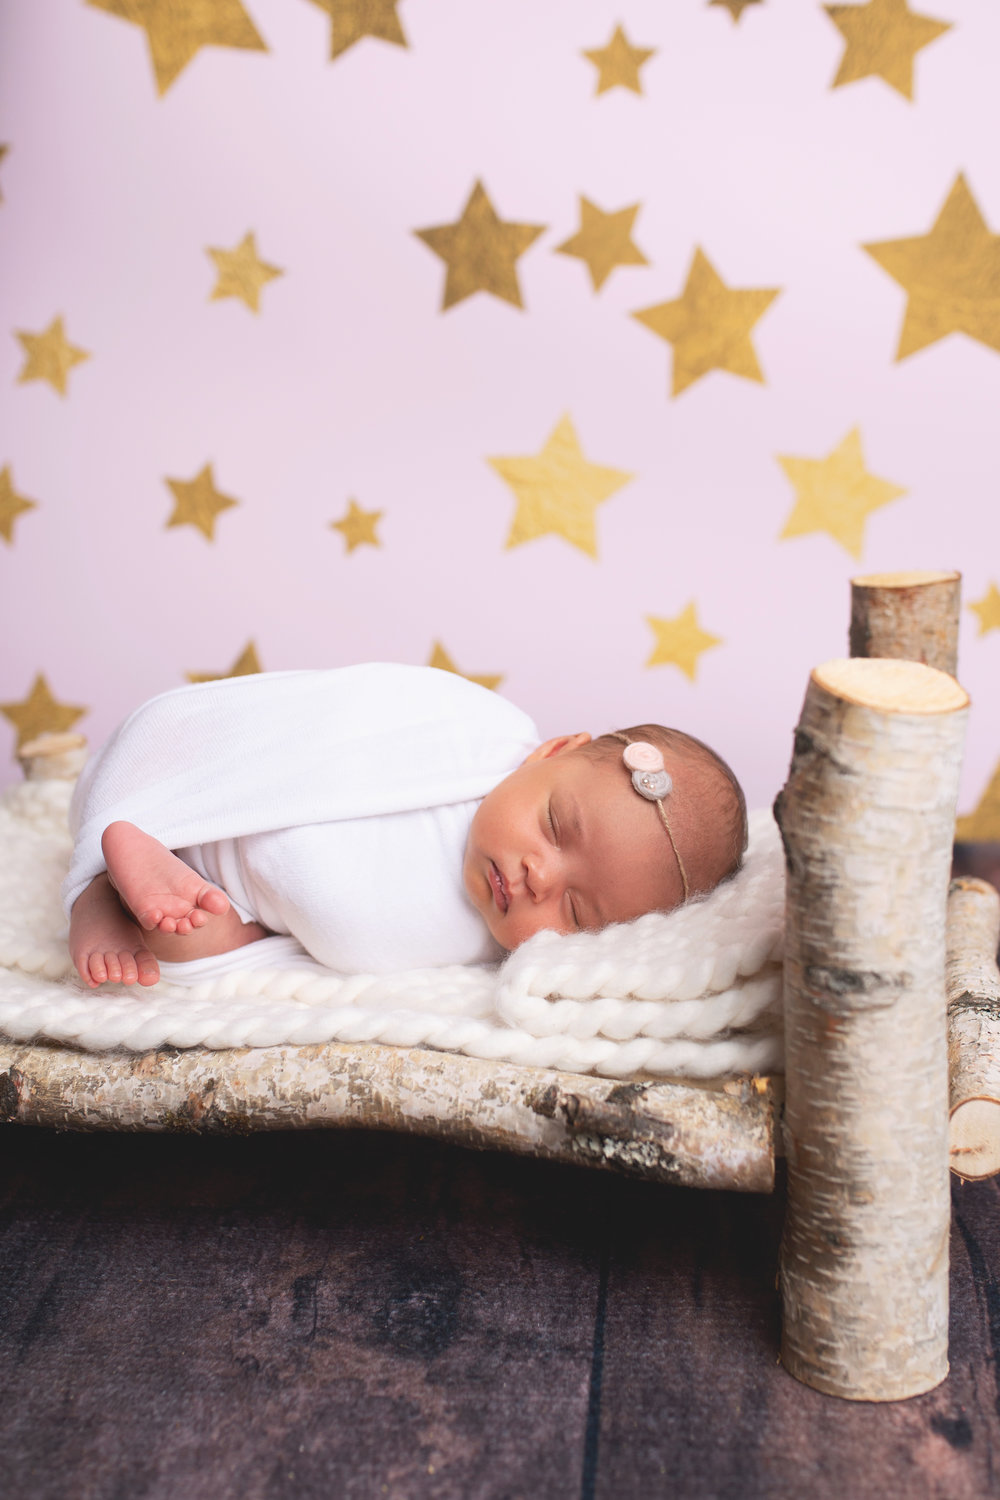 anchorage-newborn-photographer-7.jpg